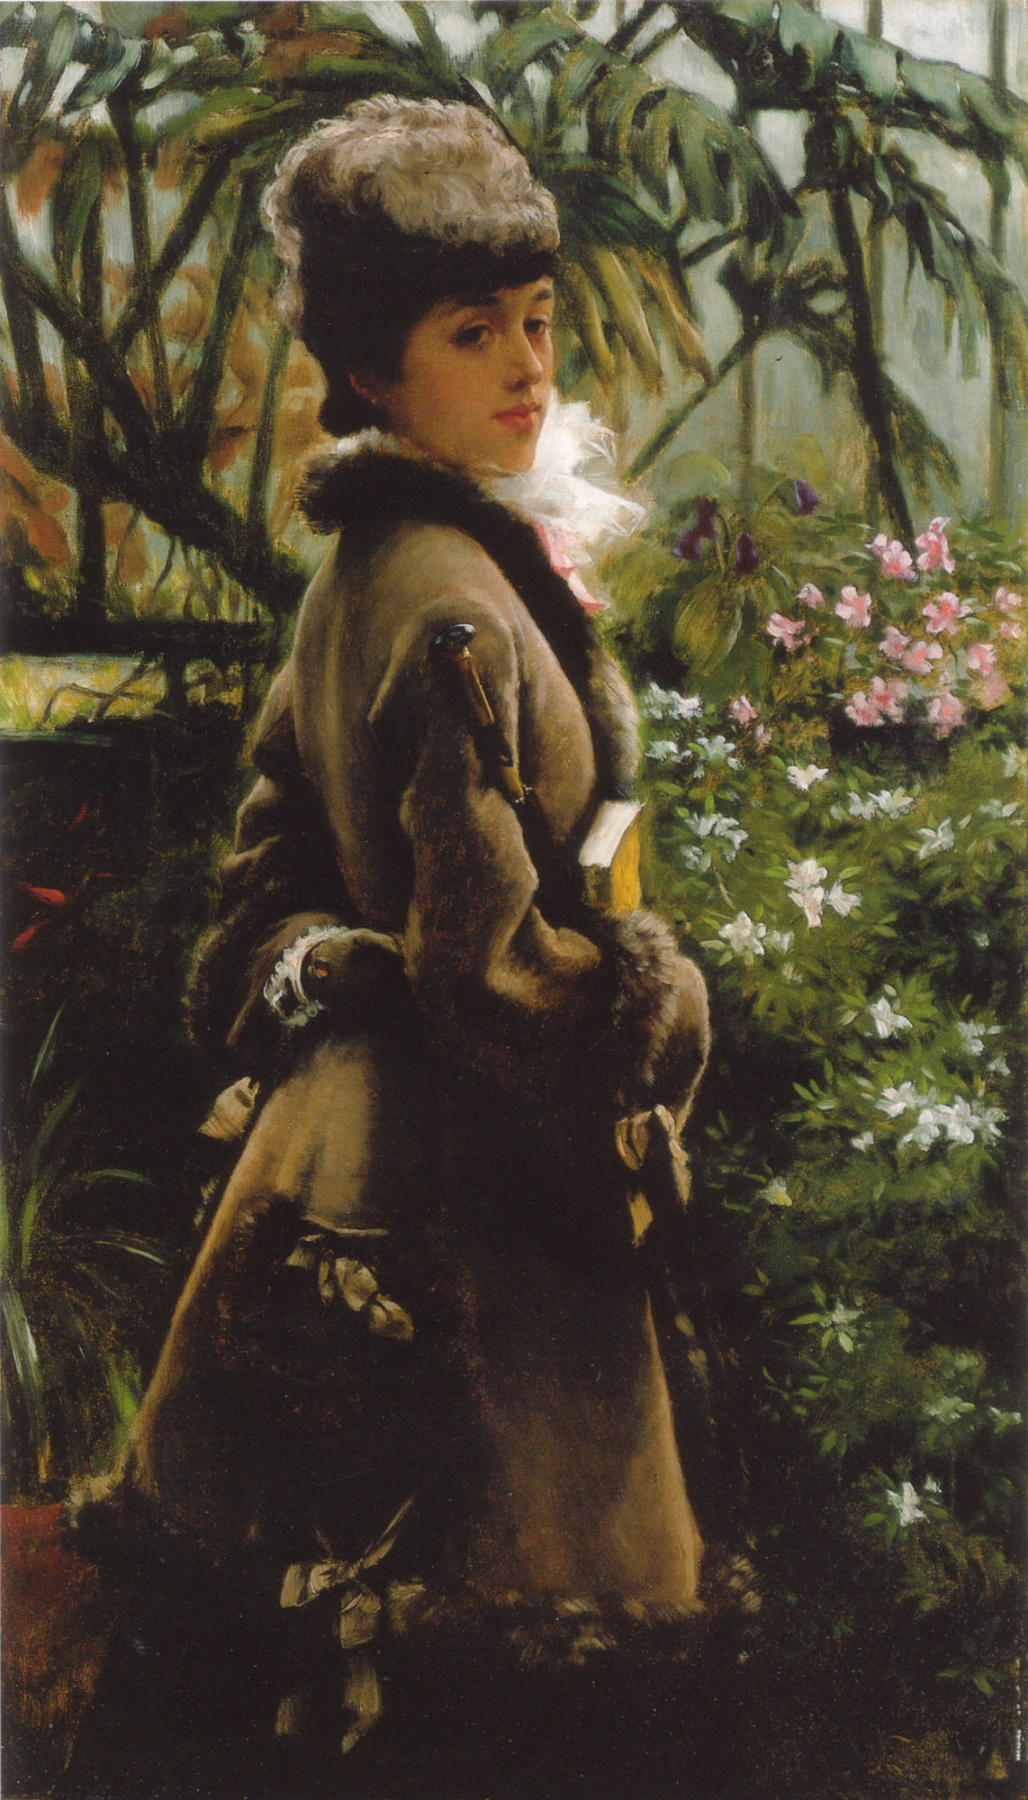 James Tissot. In the greenhouse